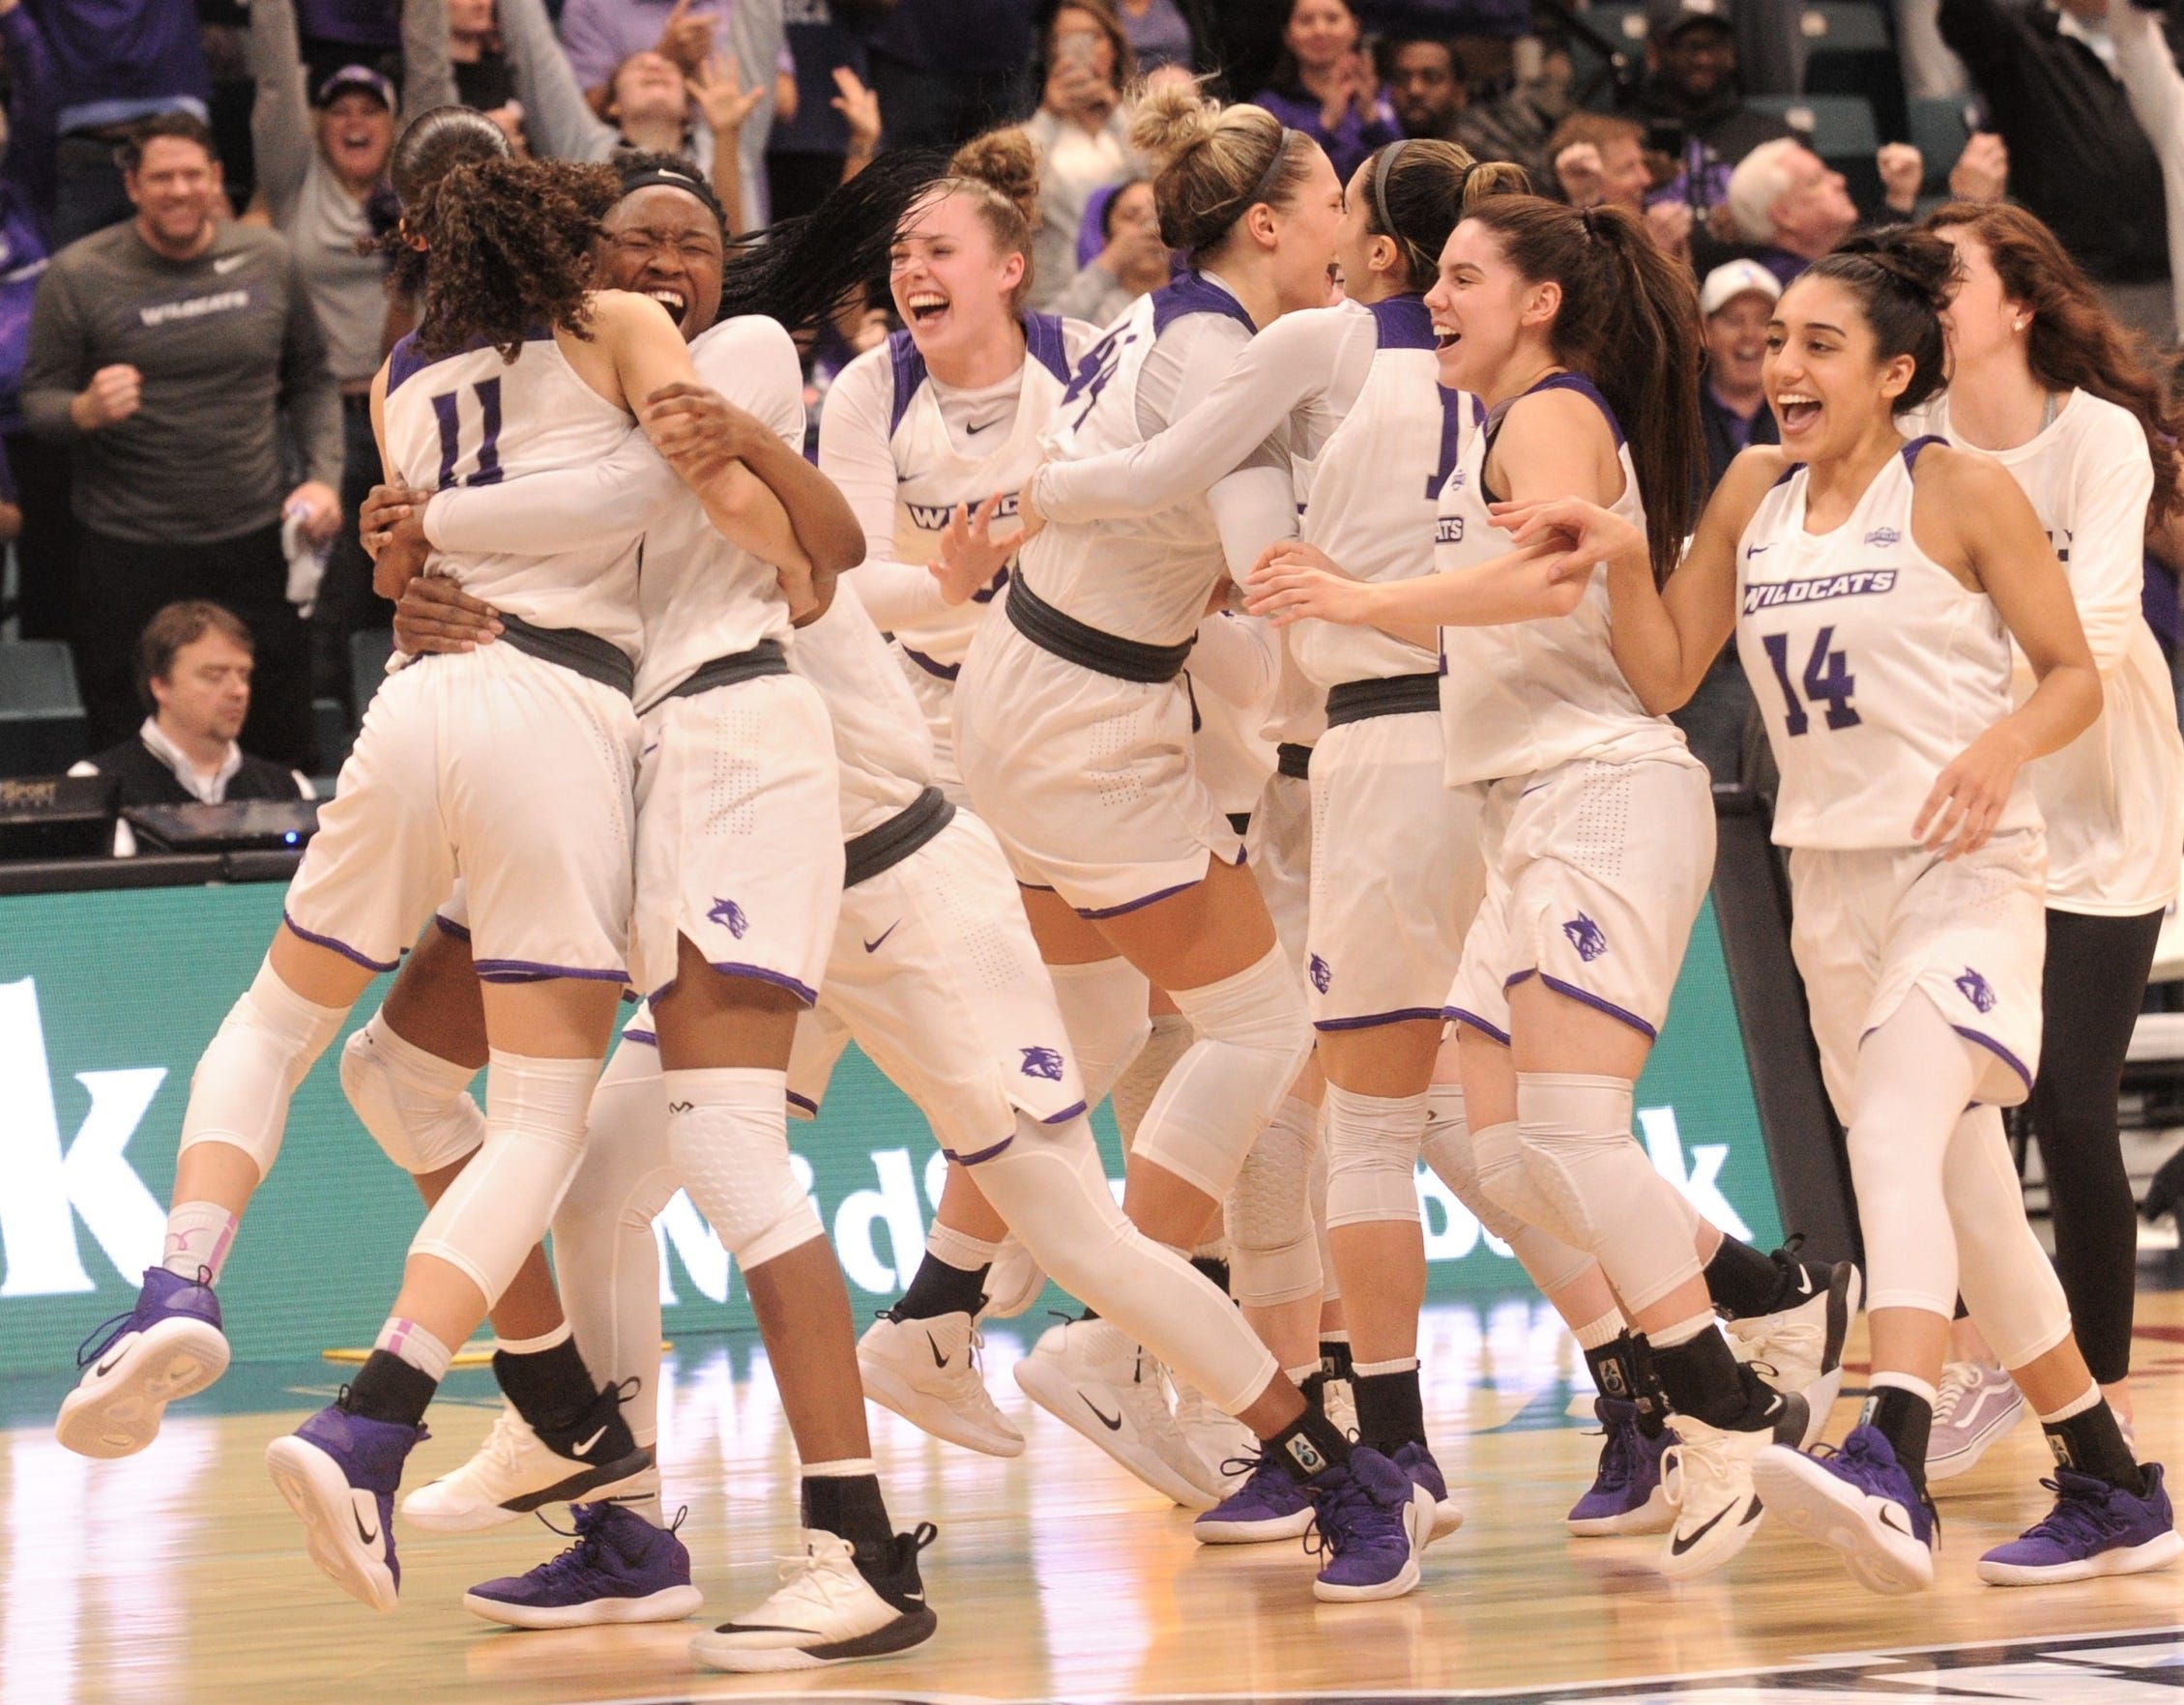 ACU women basketball players celebrate after beating Texas A&M-Corpus Christi 69-68 for the Southland Conference Tournament title March 17 at the Merrell Center in Katy.